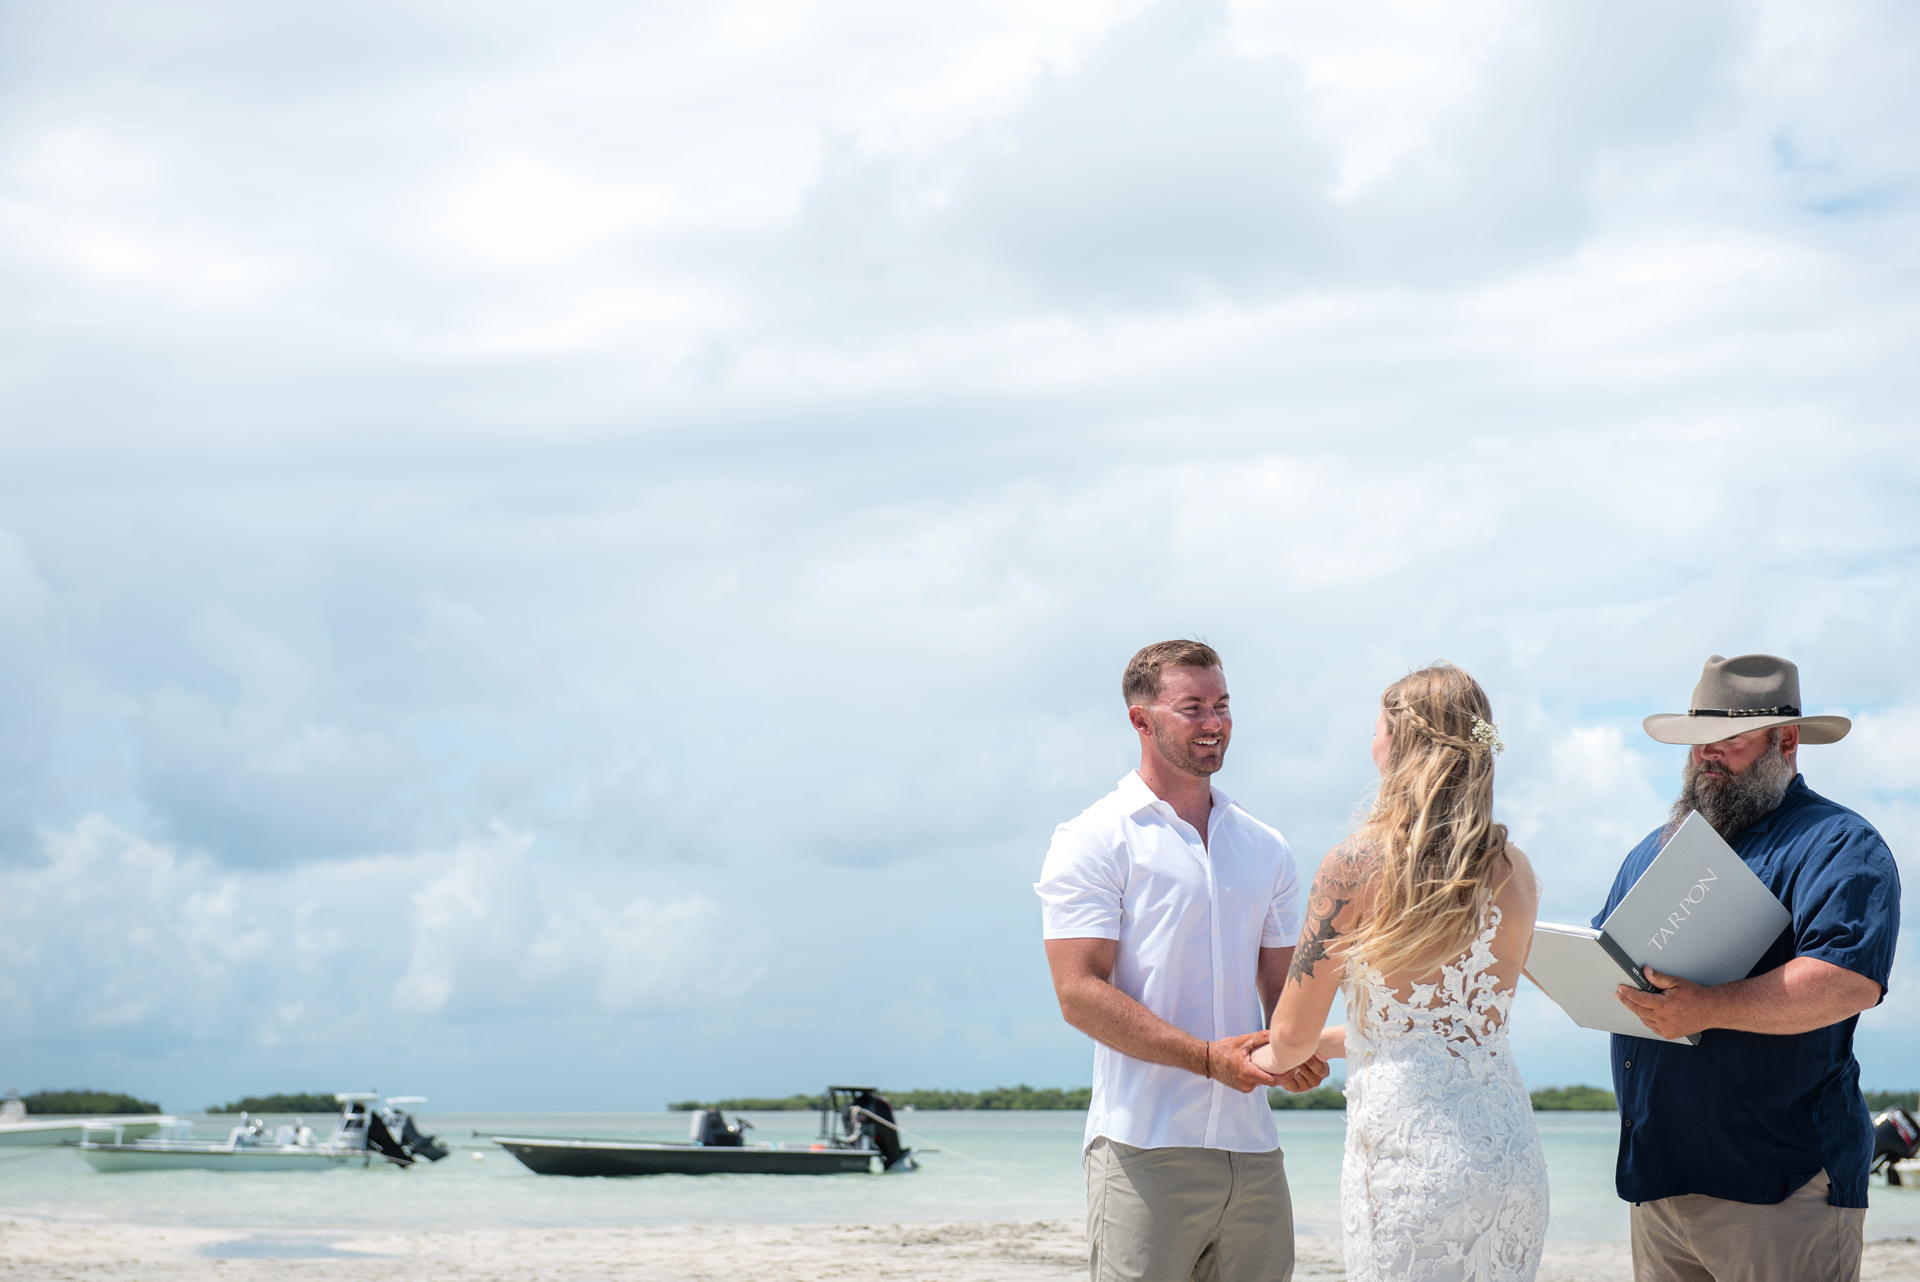 Florida Keys Elopement Image | The couple share a quiet moment during the ceremony